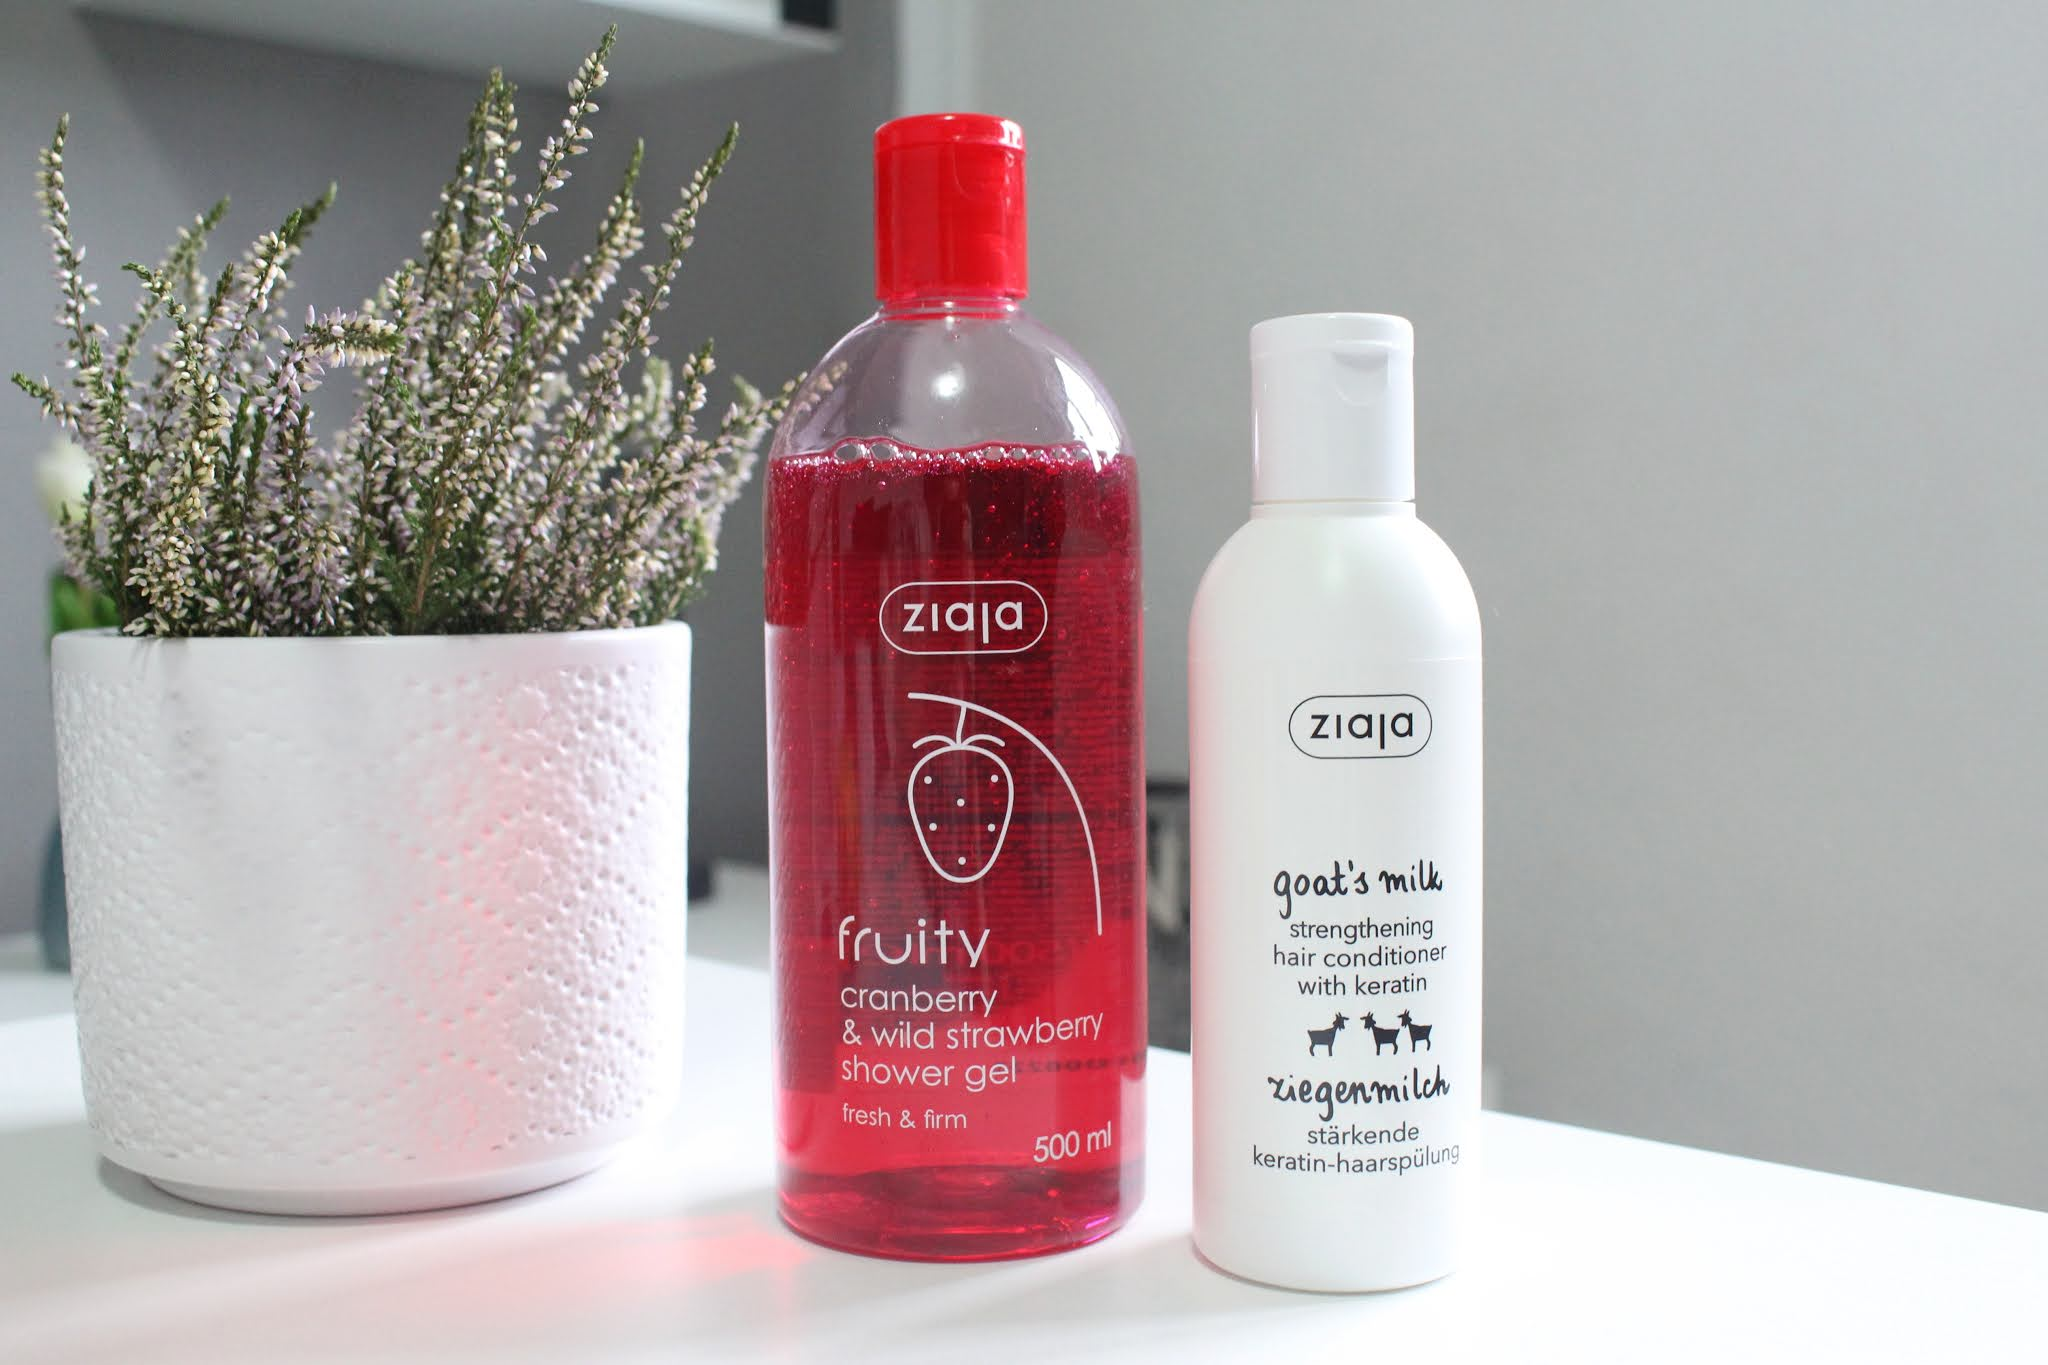 Ziaja, review, shower gel, beauty, notino, blogger, blog, recenzia, kozmetika, blogerka